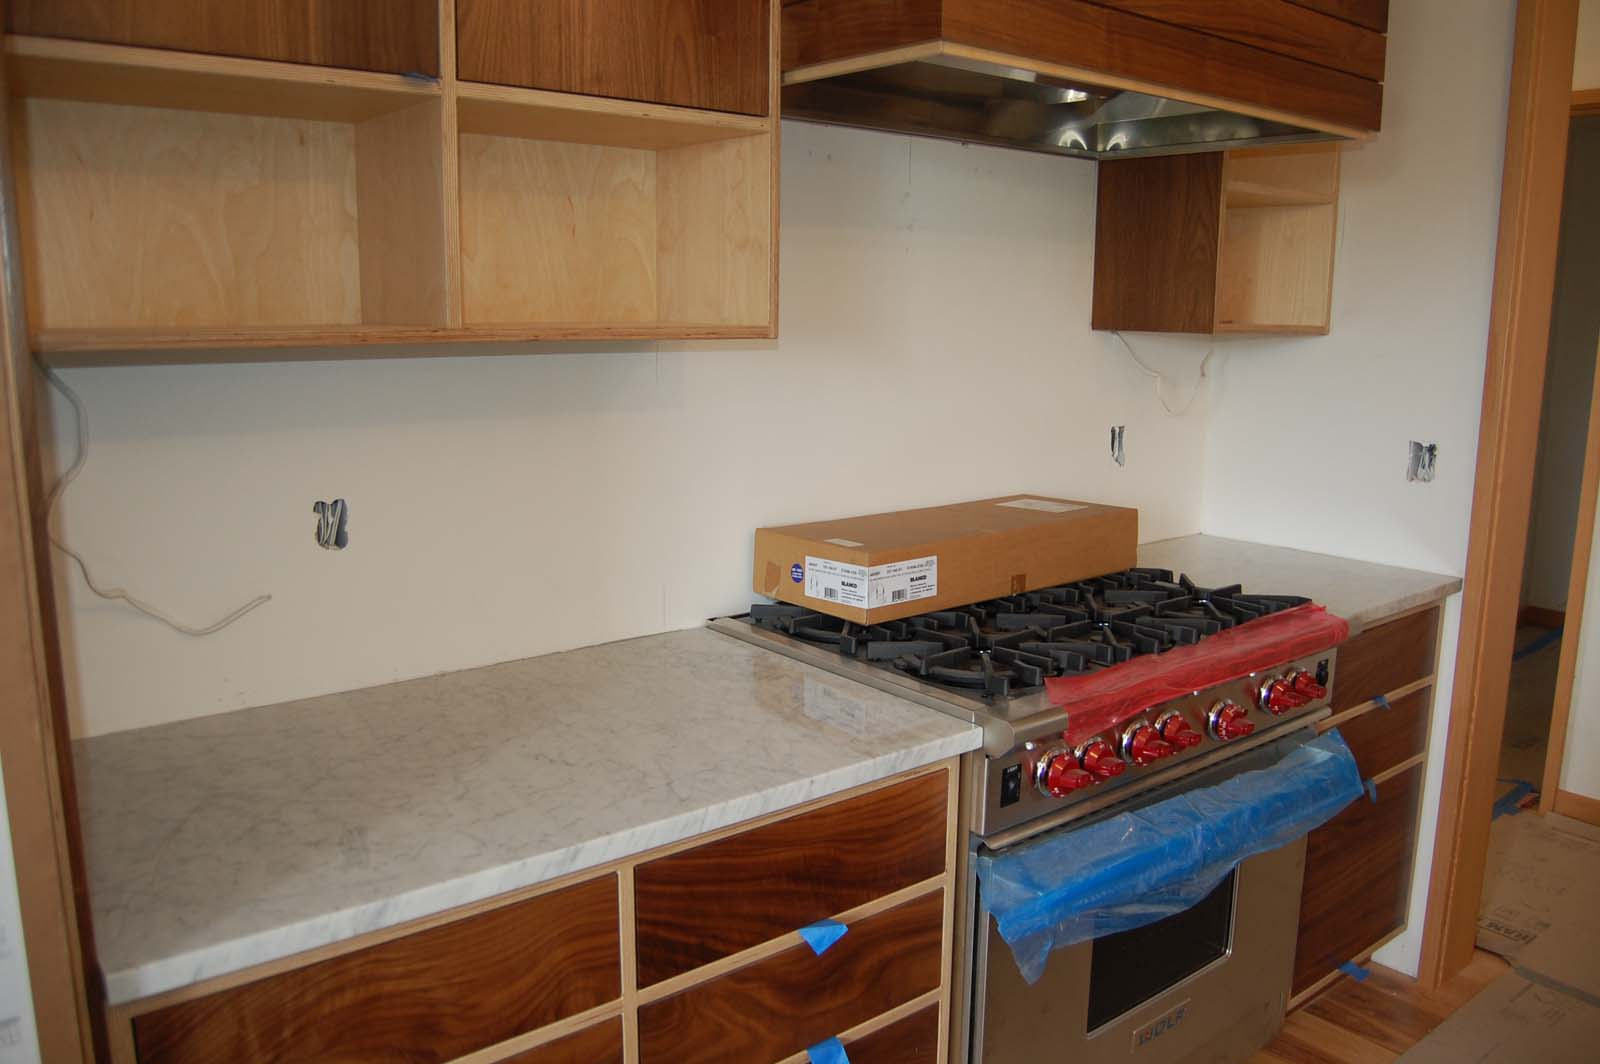 skyline_june_kitchen_01.jpg